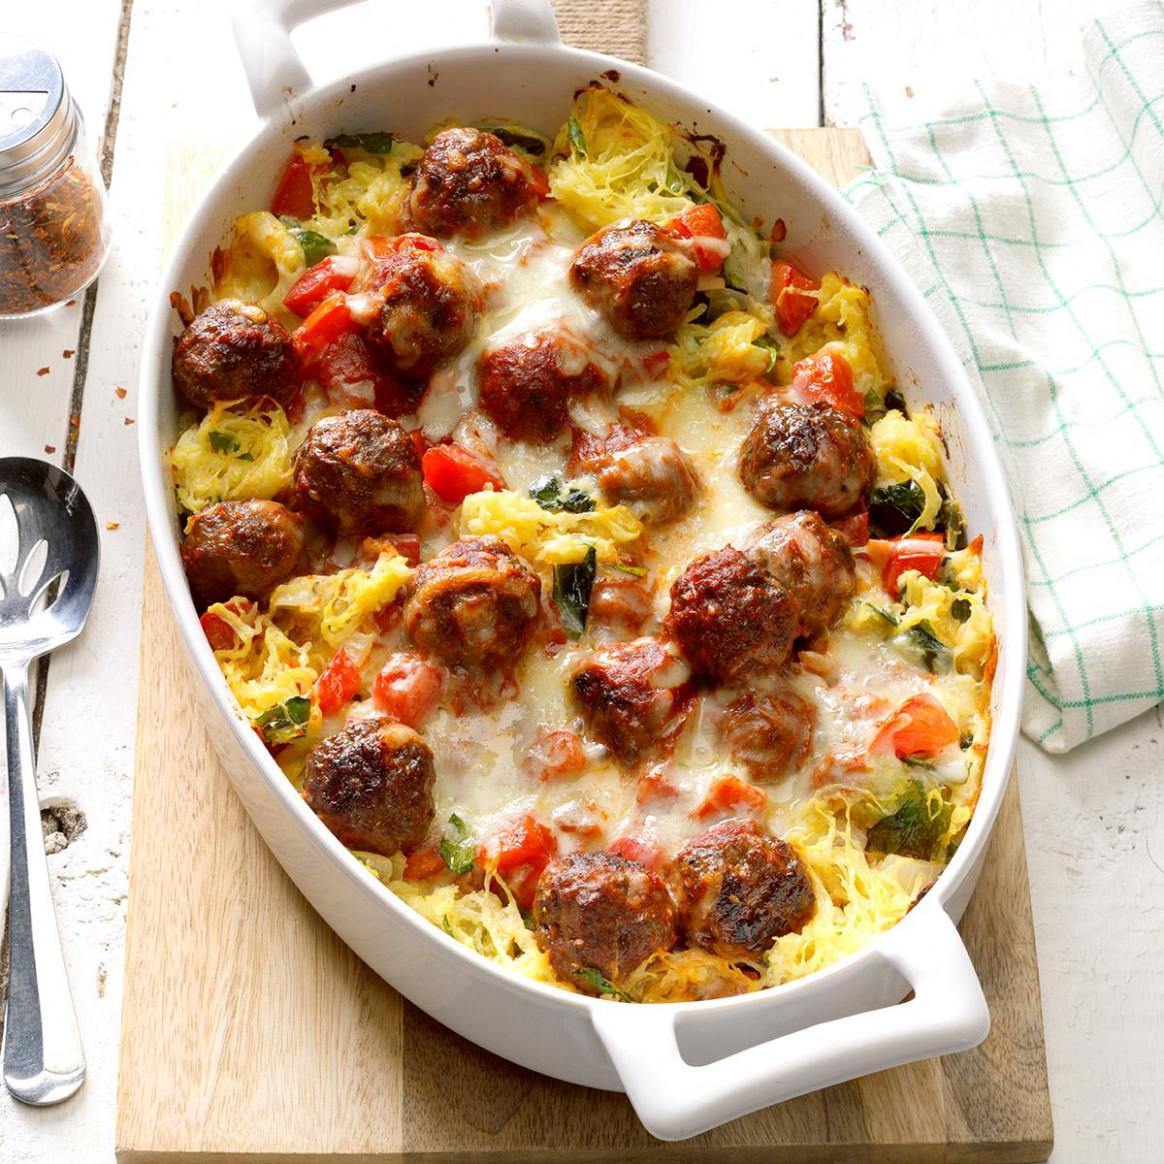 50 Healthy Casserole Recipes | Taste of Home - recipes ground beef casseroles healthy